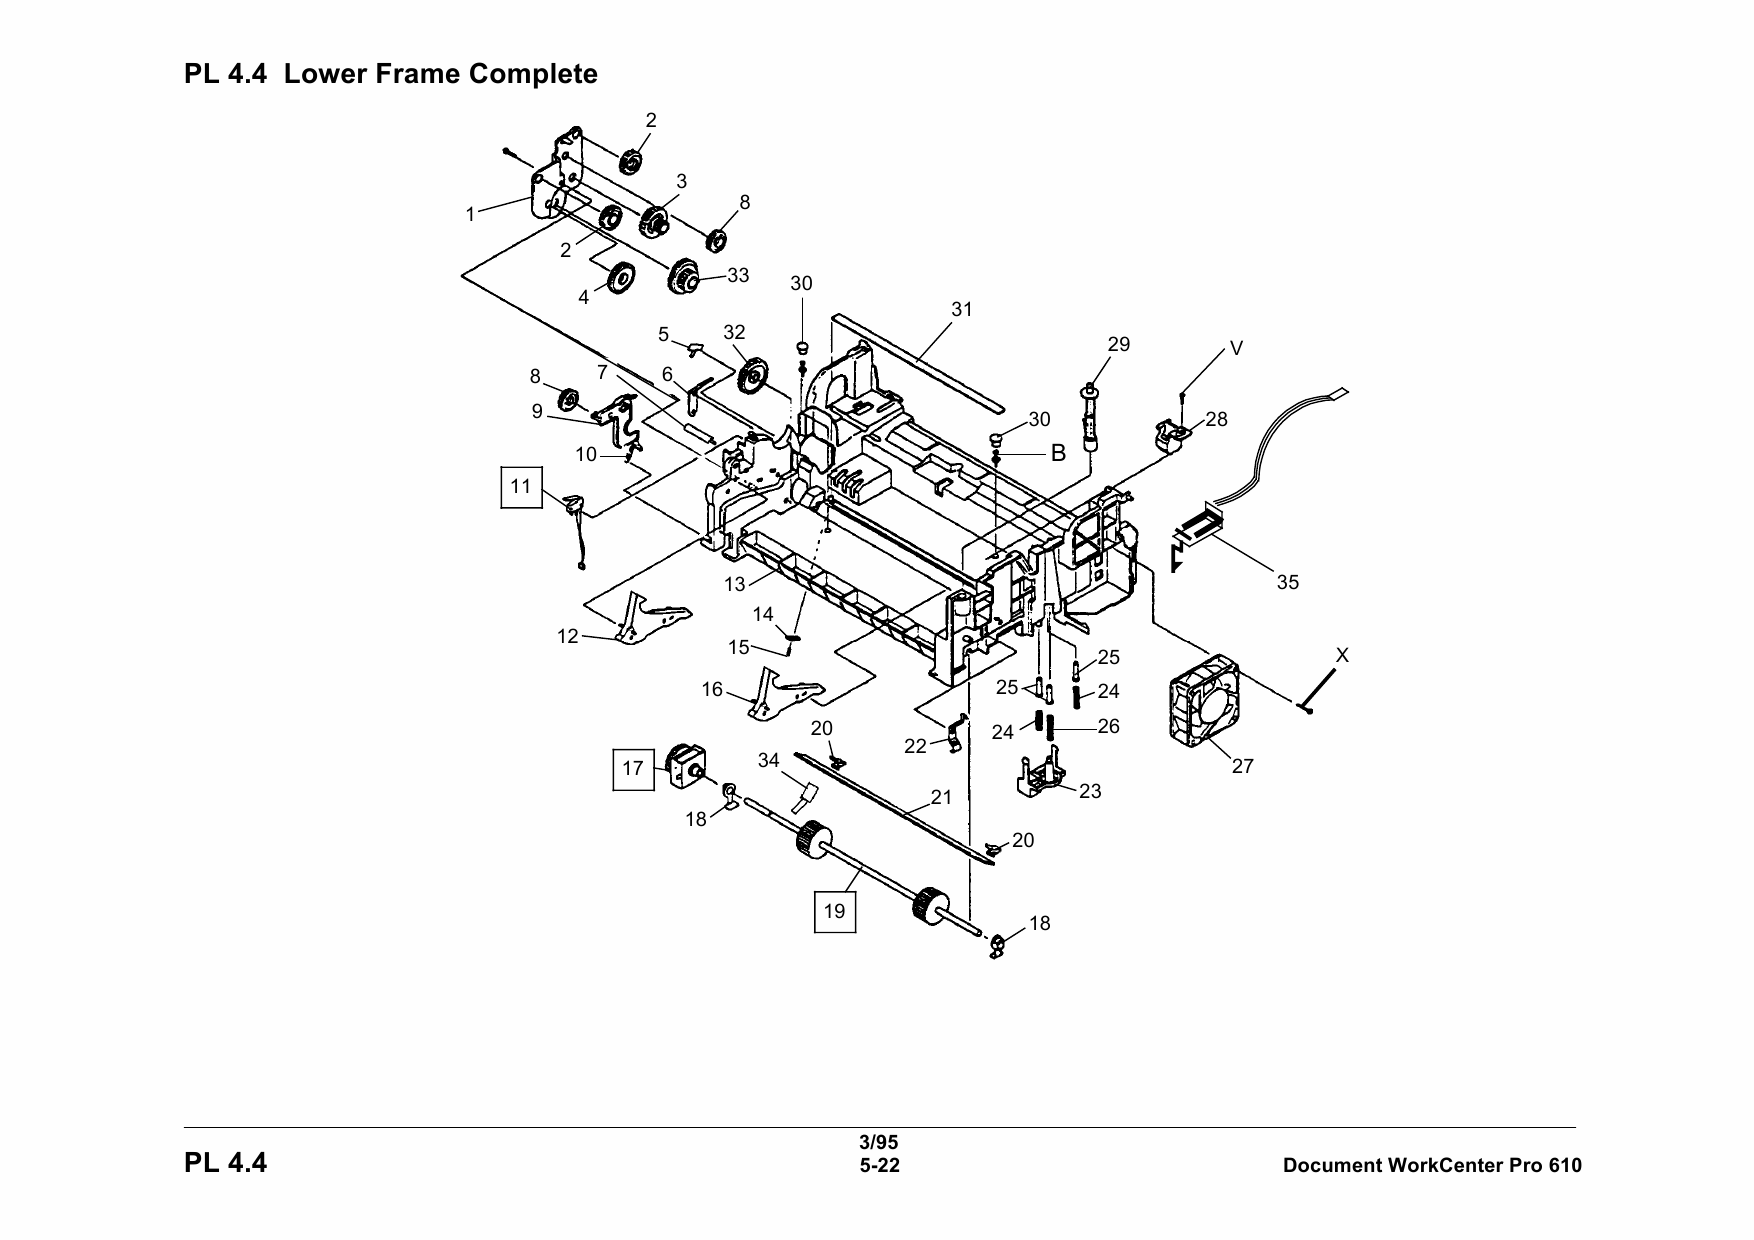 Xerox WorkCentre Pro-610 Parts List Manual-2